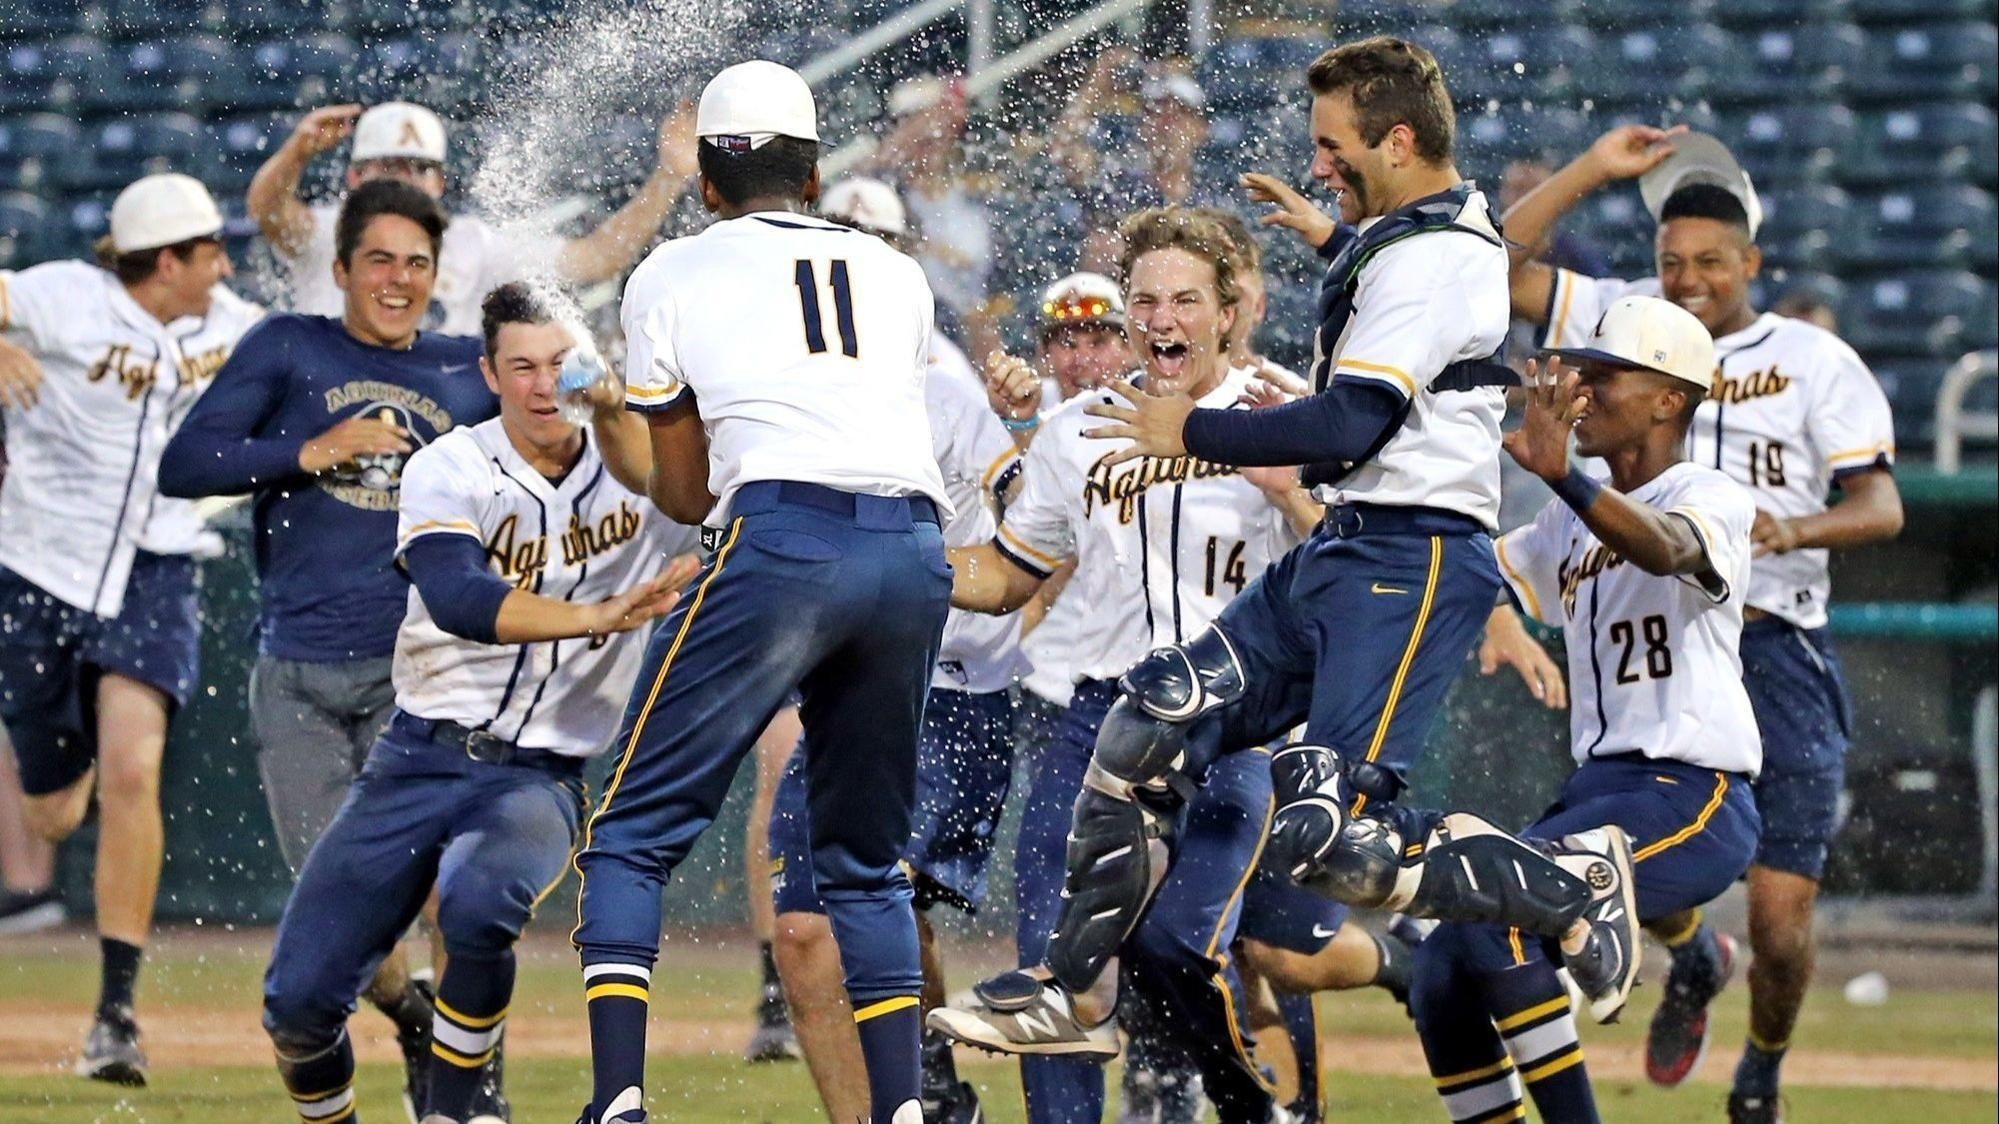 St Thomas Aquinas Rolled In The Class 8a State Baseball Championship Game Topping Sarasota For The Raiders Championship Game Sports Complex Thomas Aquinas